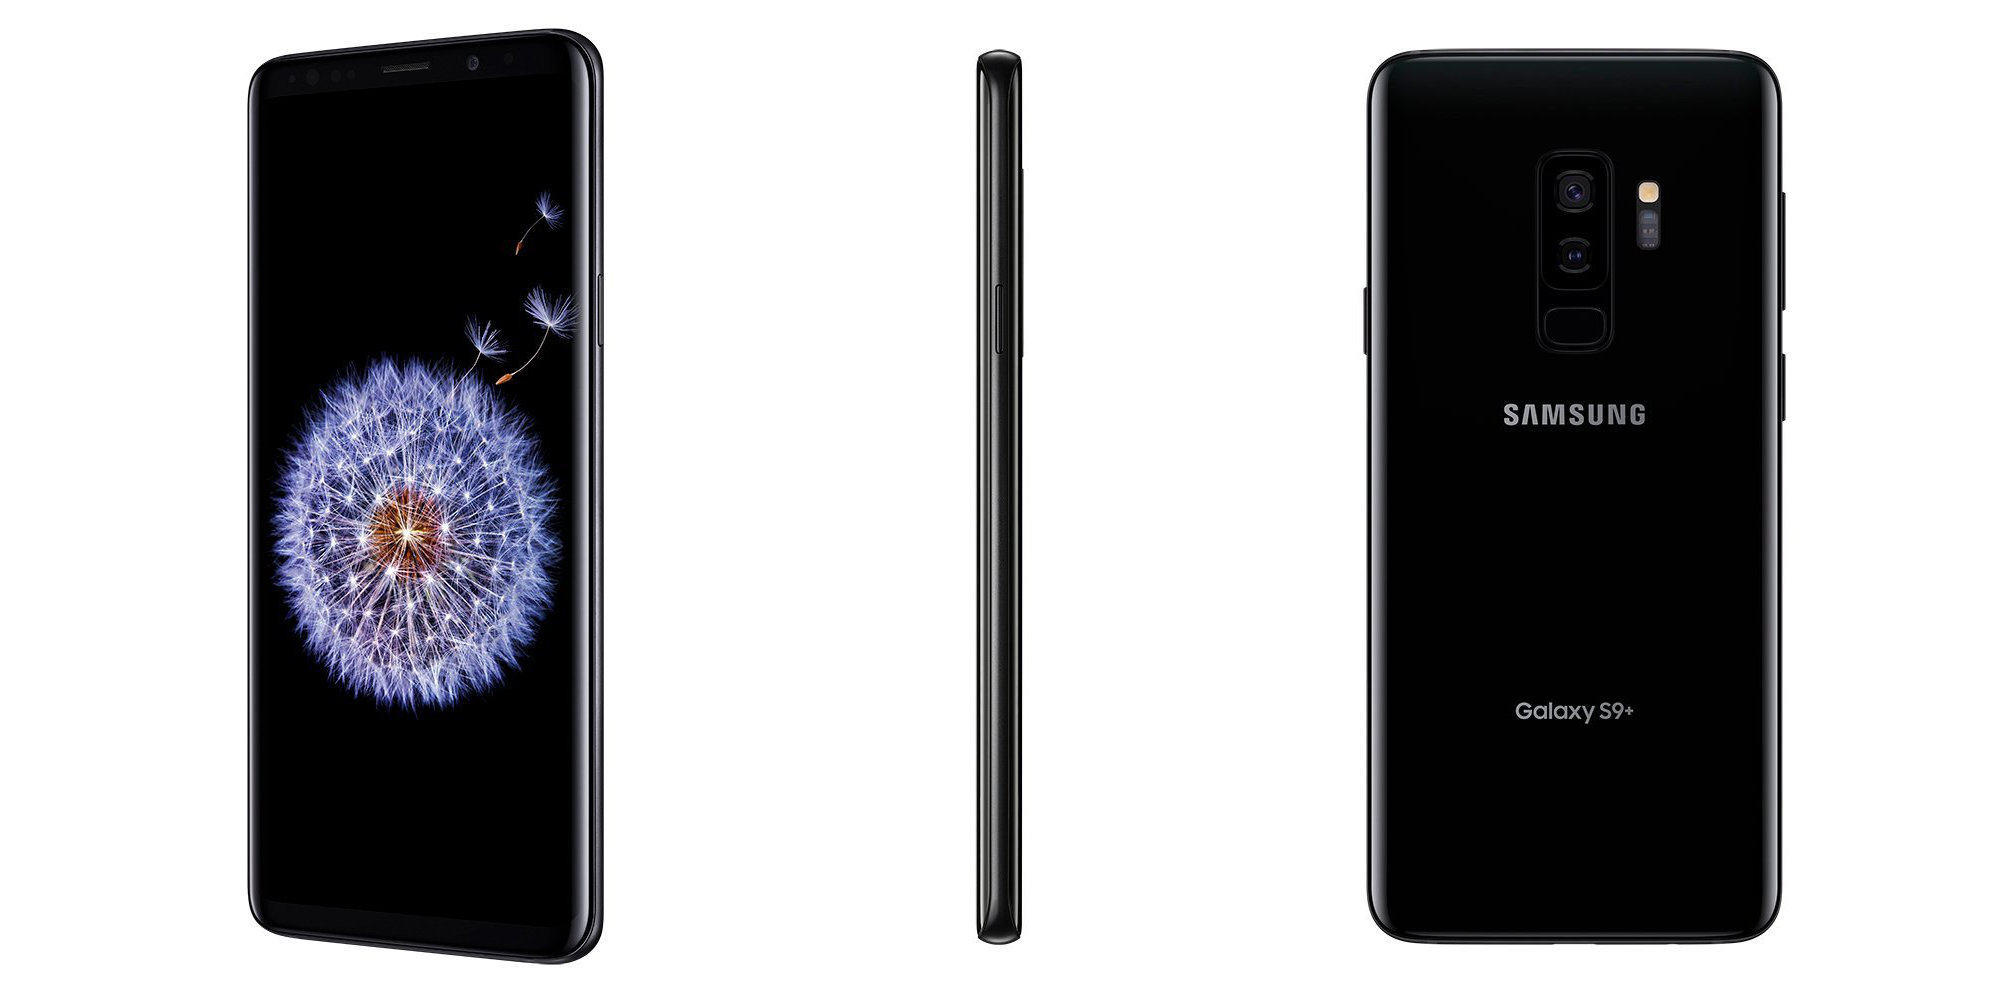 Travel abroad w/ an unlocked Samsung Galaxy S9 for $600 shipped (Reg. $720)